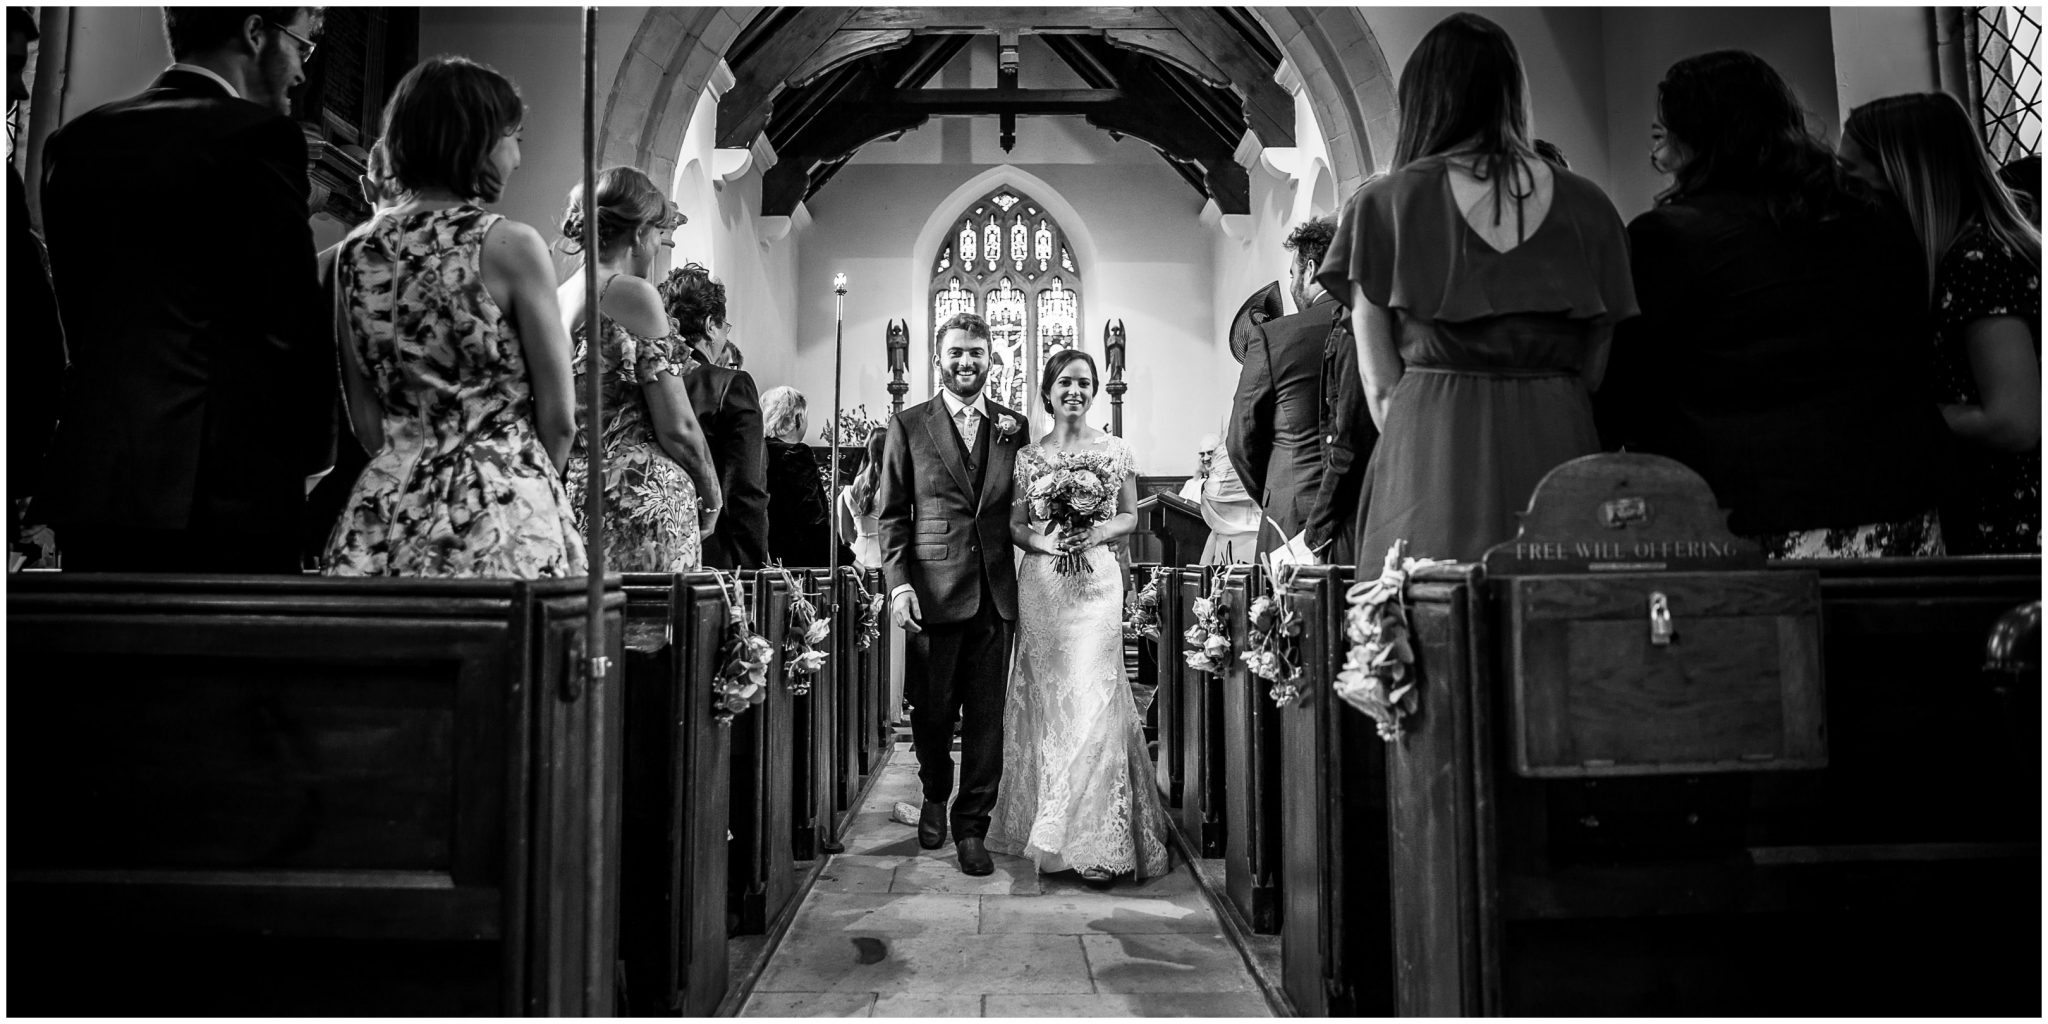 The newly married bride and groom walk down the aisle together as husband and wife